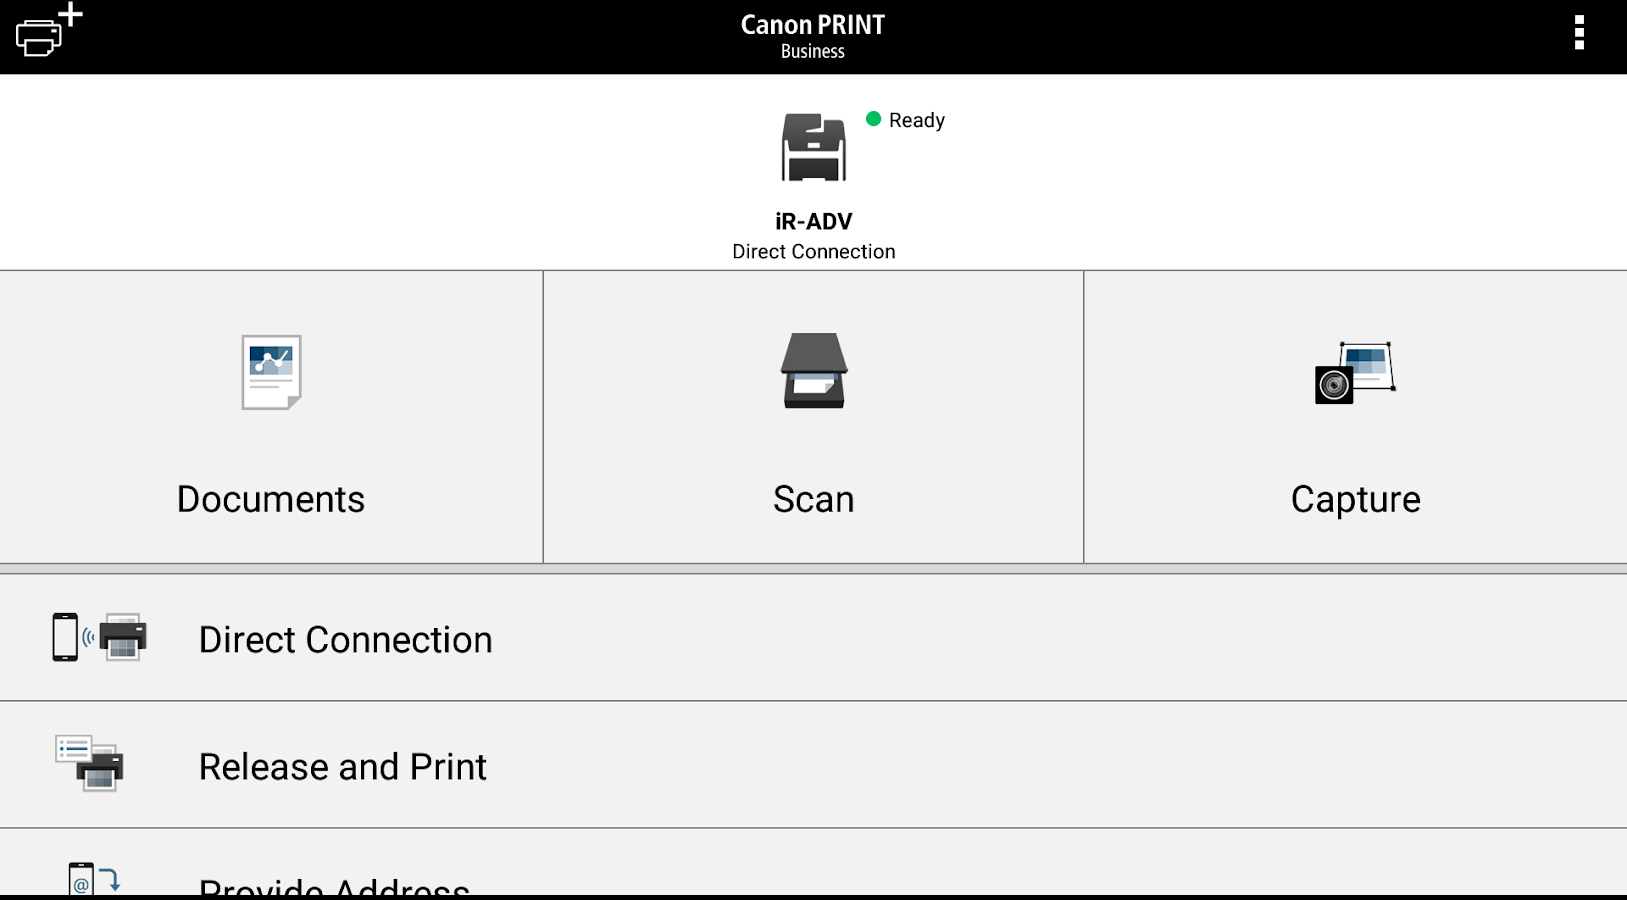 canon print business android apps on google play